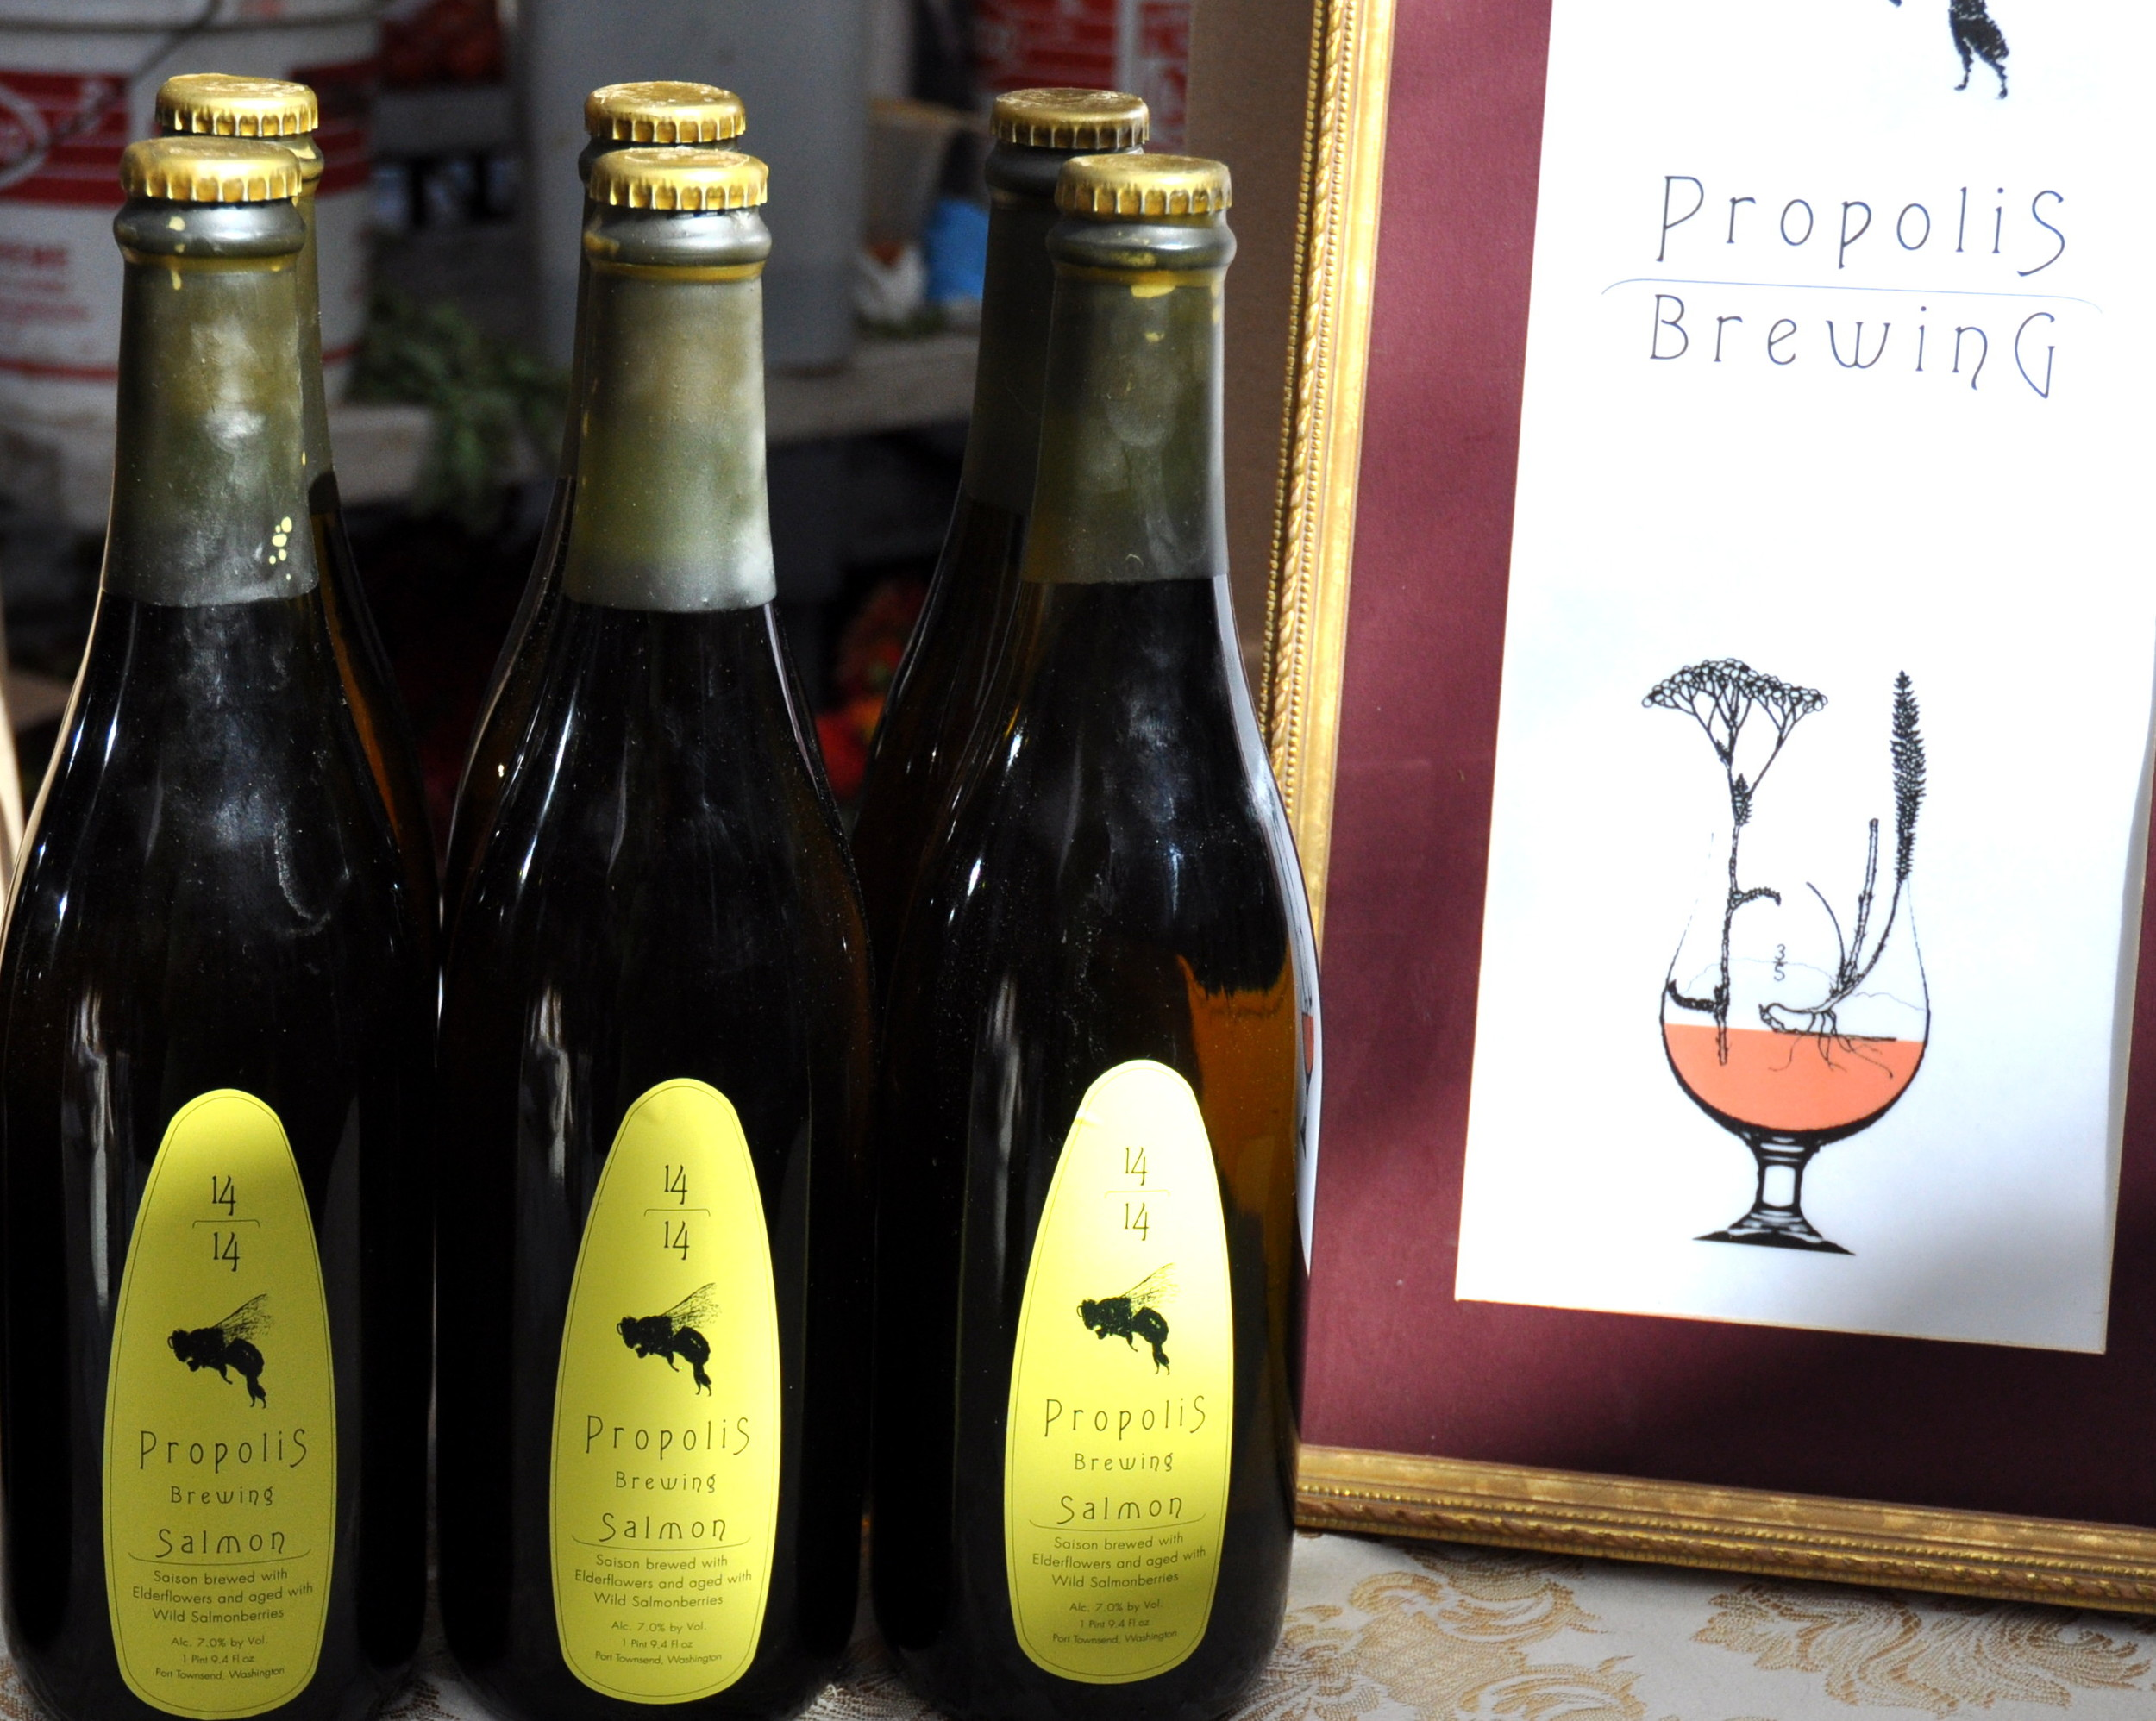 Award-winning Belgian-style ales from Propolis Brewing at your Ballard Farmers Market. Copyright Zachary D. Lyons.